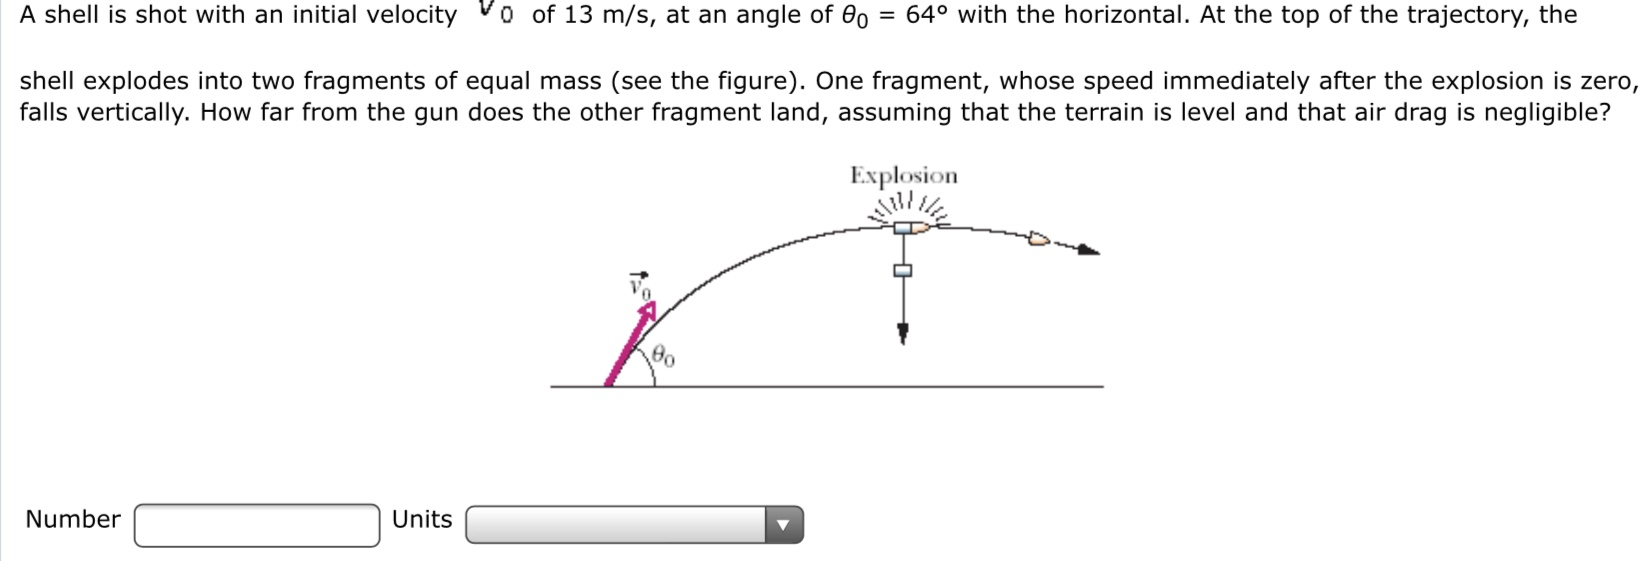 A shell is shot with an initial velocity o of 13 m/s, at an angle of 0o = 64° with the horizontal. At the top of the trajectory, the shell explodes into two fragments of equal mass (see the figure). One fragment, whose speed immediately after the explosion is zero, falls vertically. How far from the gun does the other fragment land, assuming that the terrain is level and that air drag is negligible? Explosion Number Units